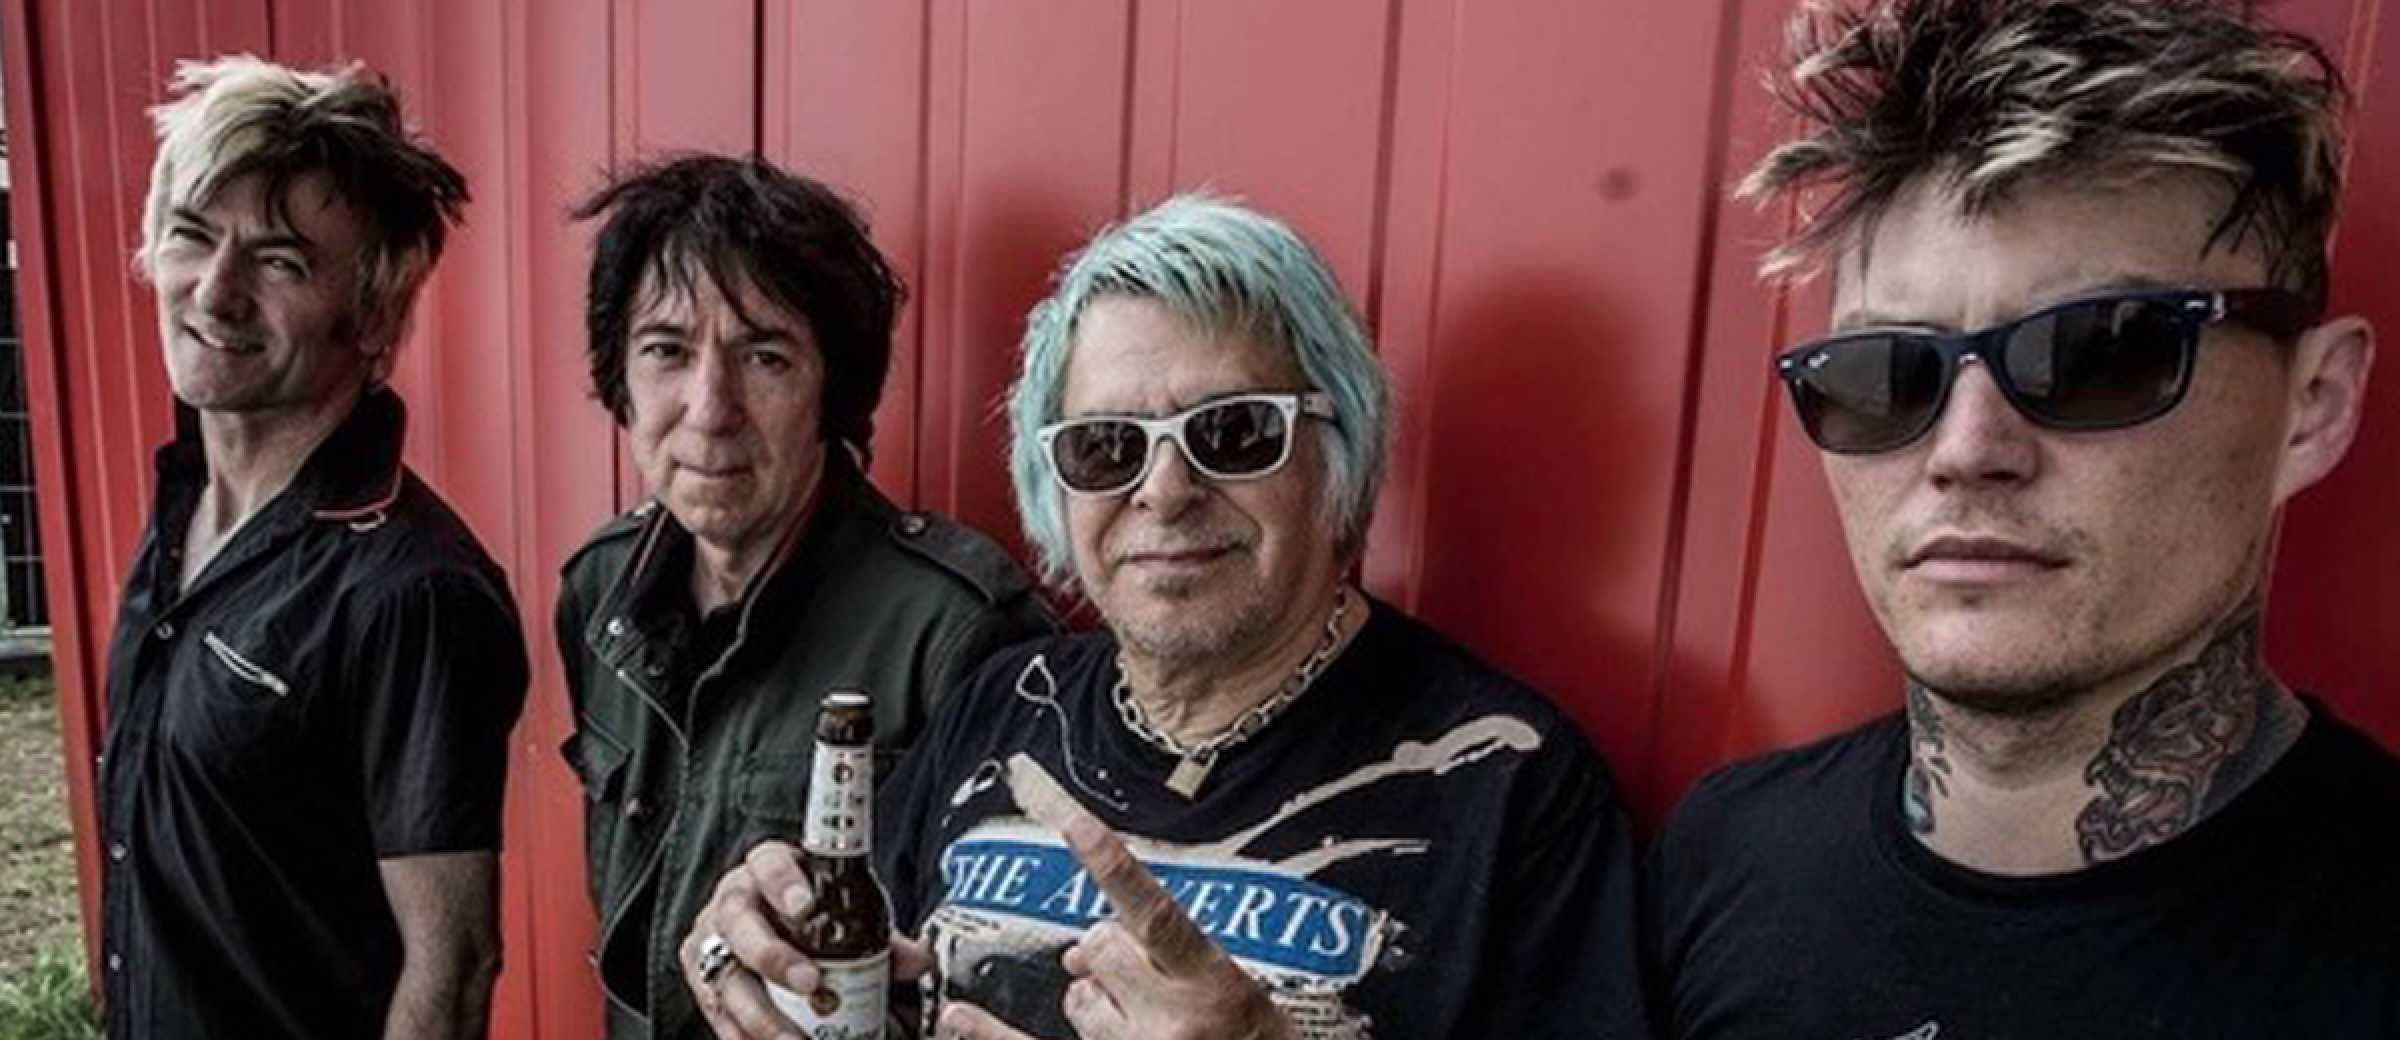 UK Subs (Diminished Responsibility) + Knock Off